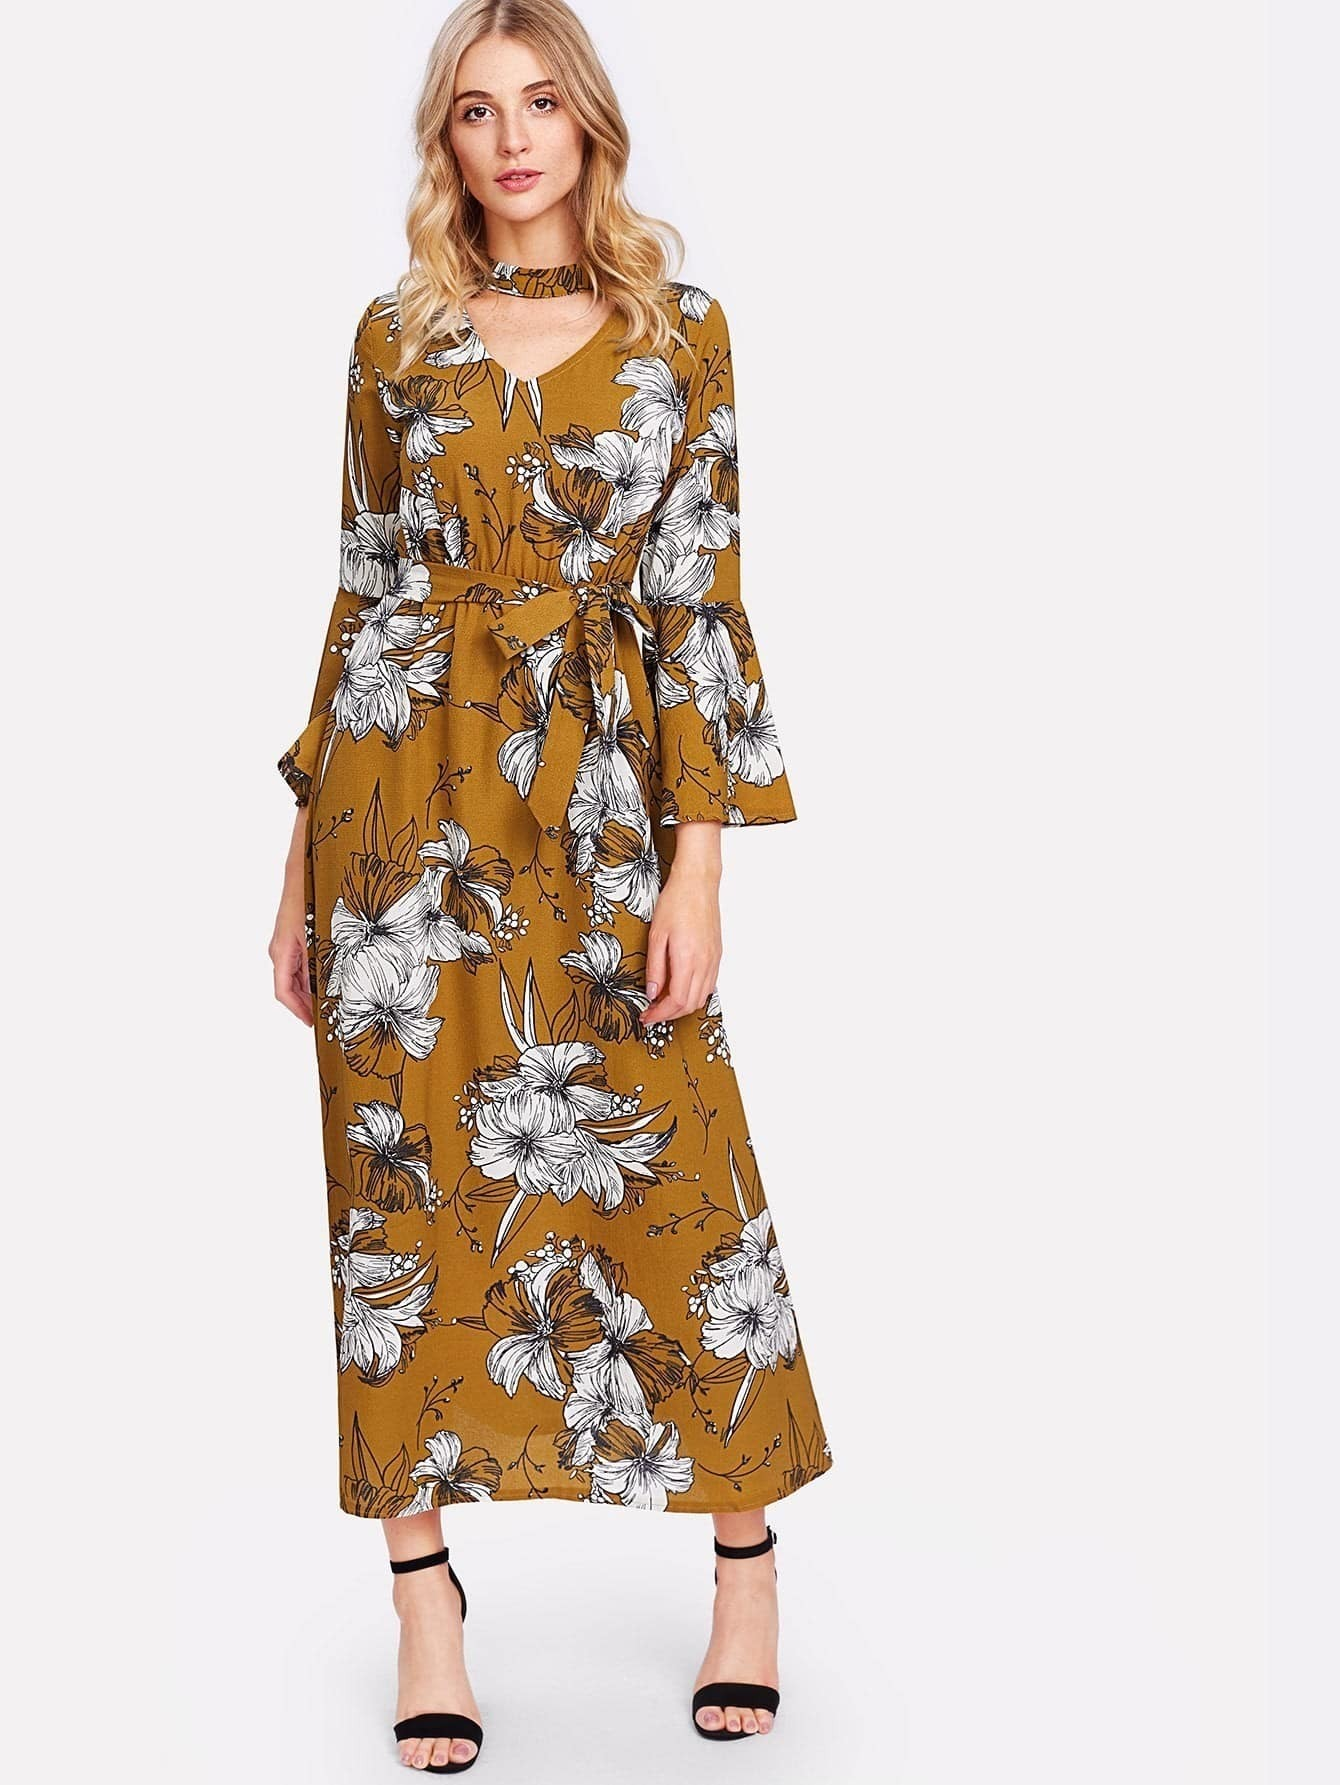 Cut Out Neck Floral Print Self Tie Waist Dress self tie waist batwing sleeve dress